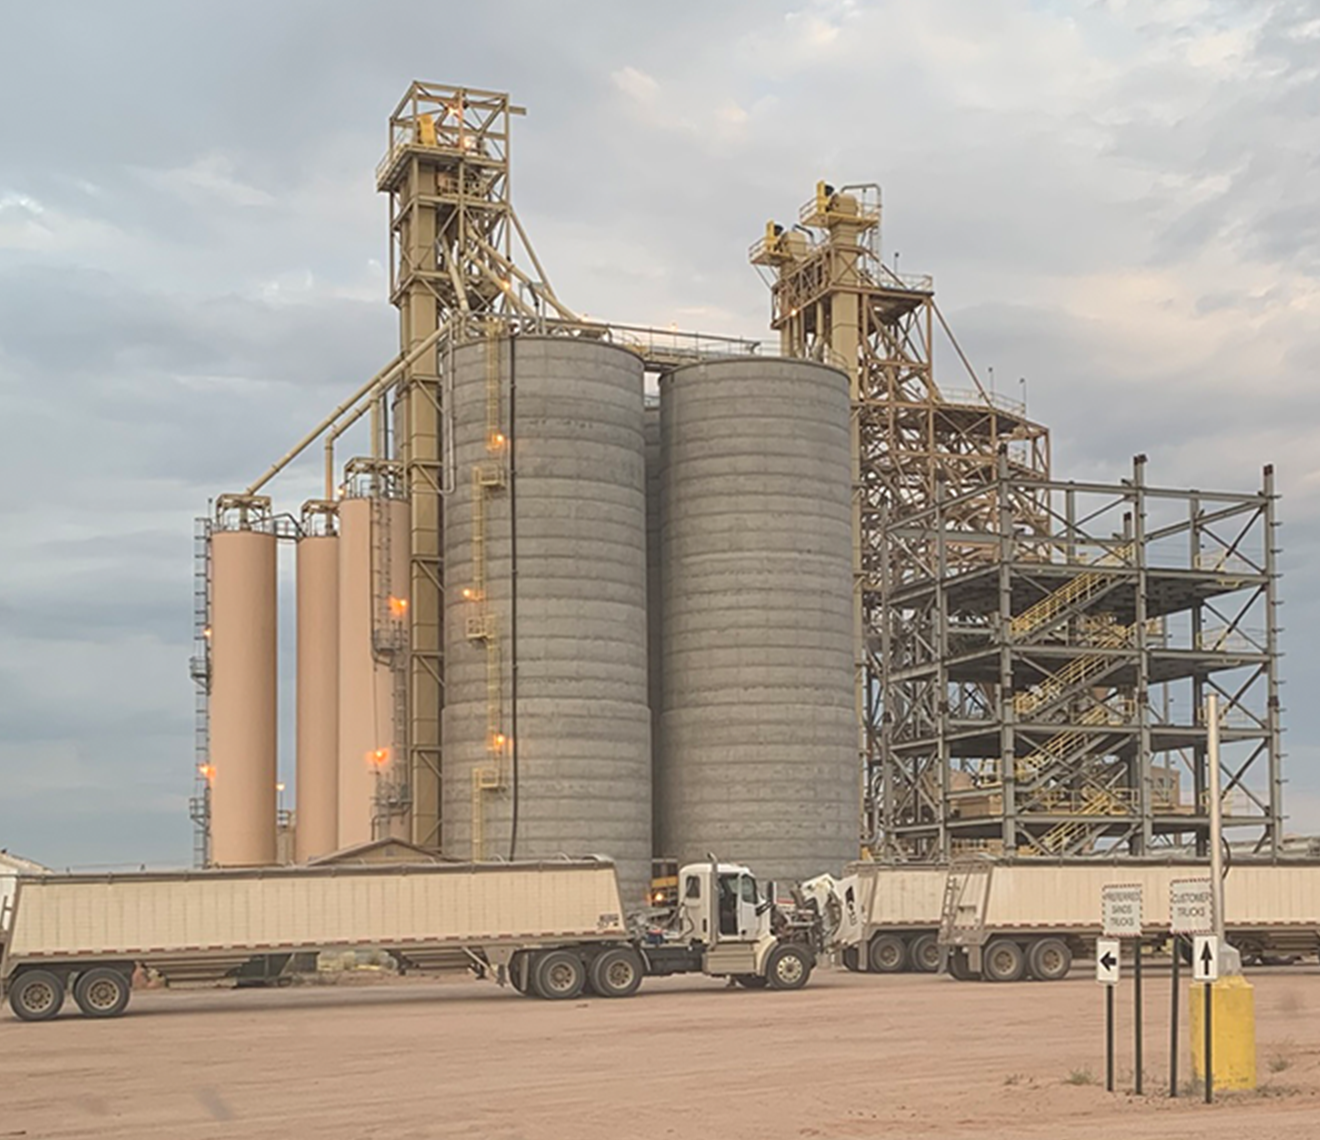 Over 20,000 tons of silo storage to ensure efficient loading of manifest and unit train shipments.